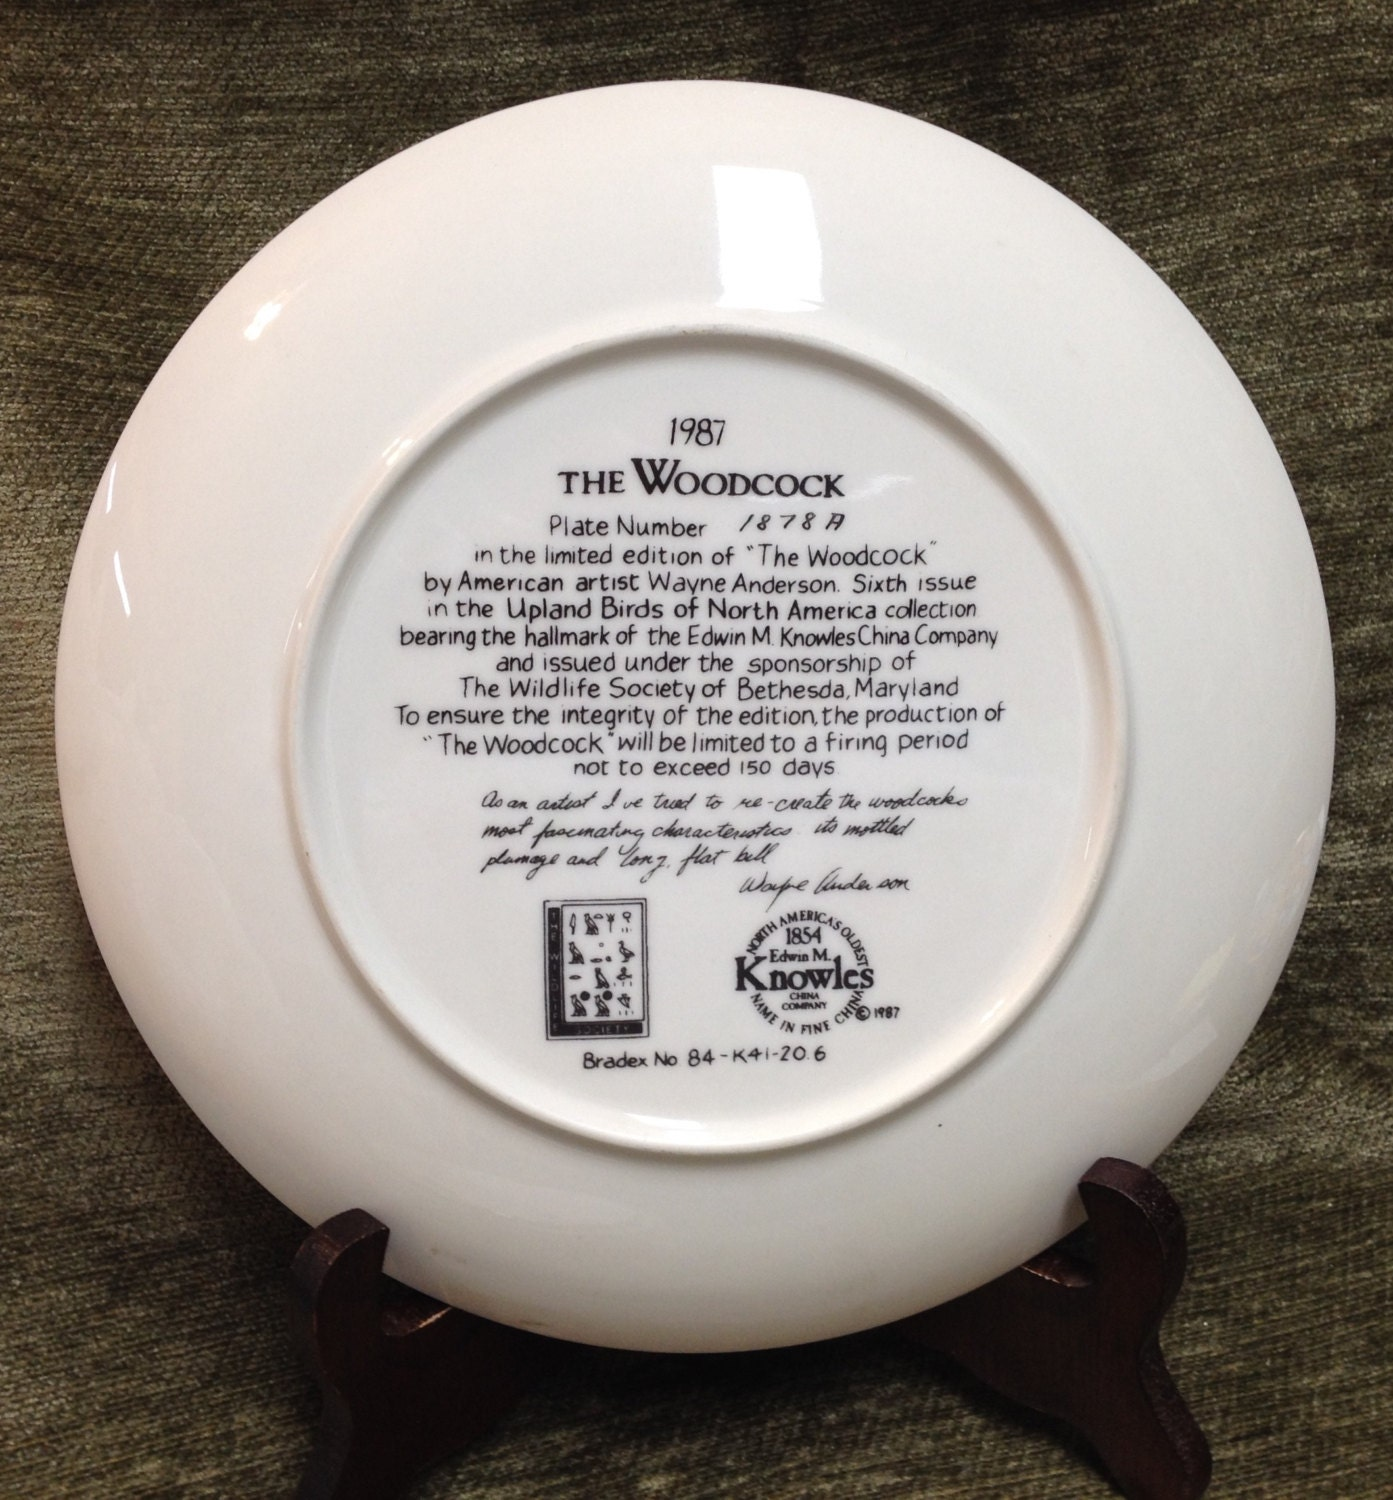 Woodcock Plate 1987 Collector's Plate By Wayne By